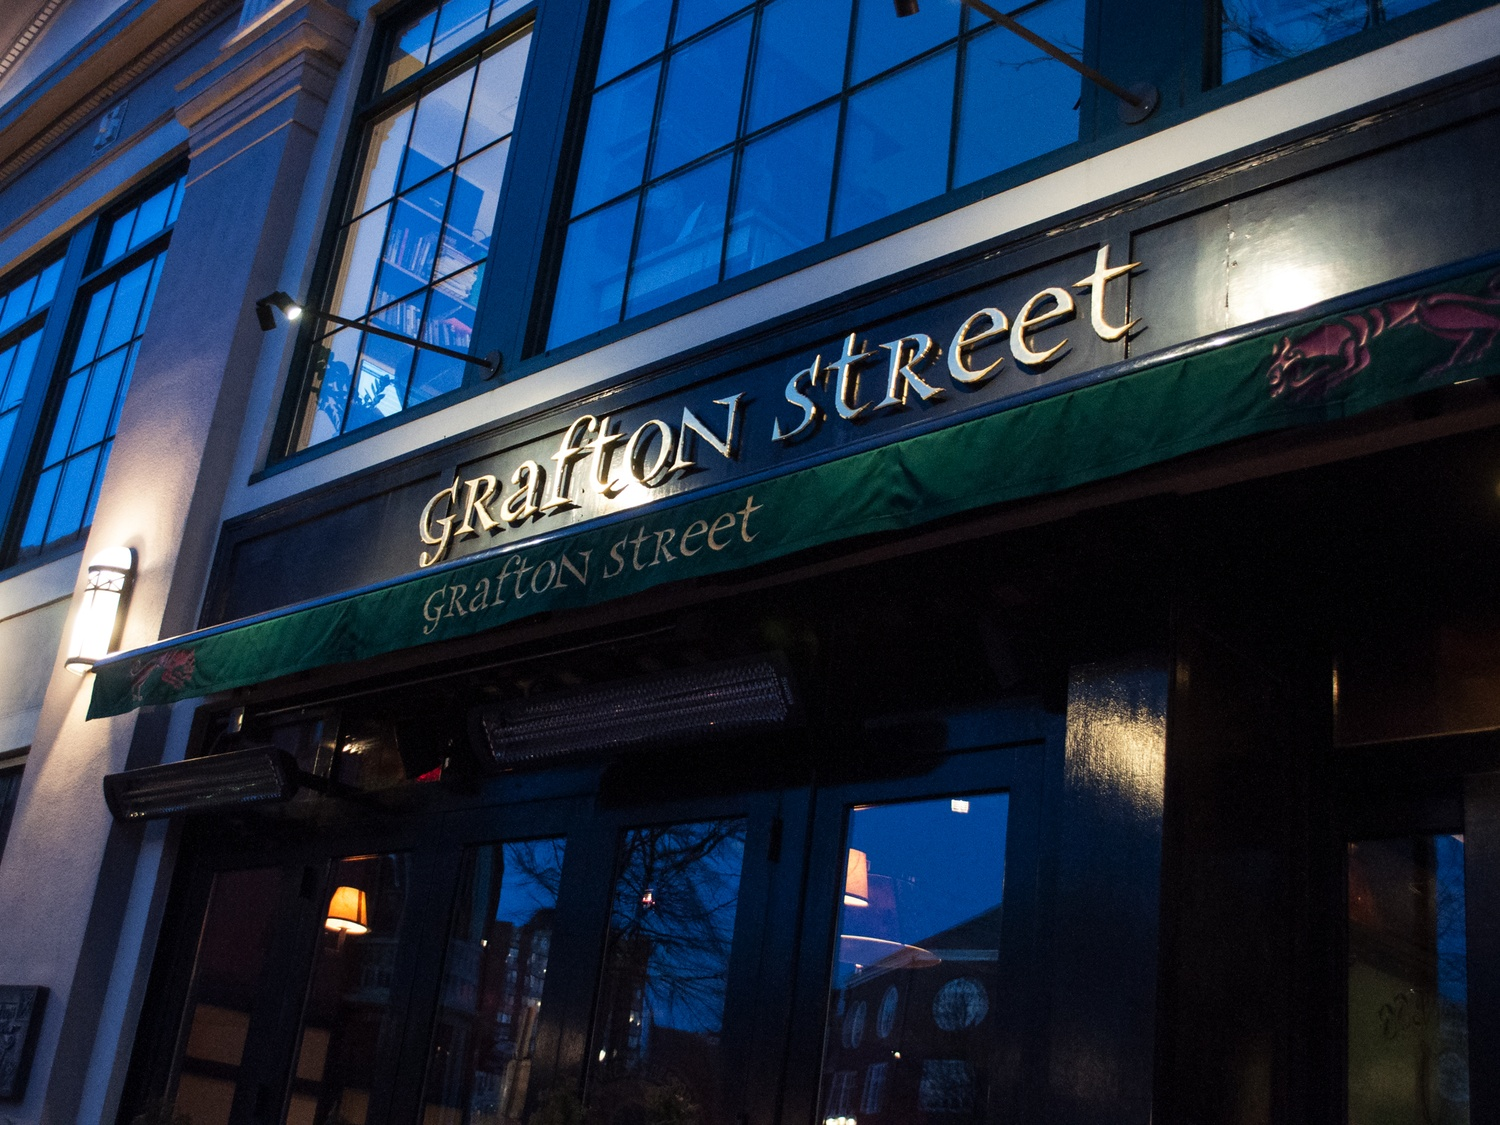 Grafton Street, located on Massachusetts Avenue in Cambridge, is one of several partner restaurants of the Classroom to Table Program.